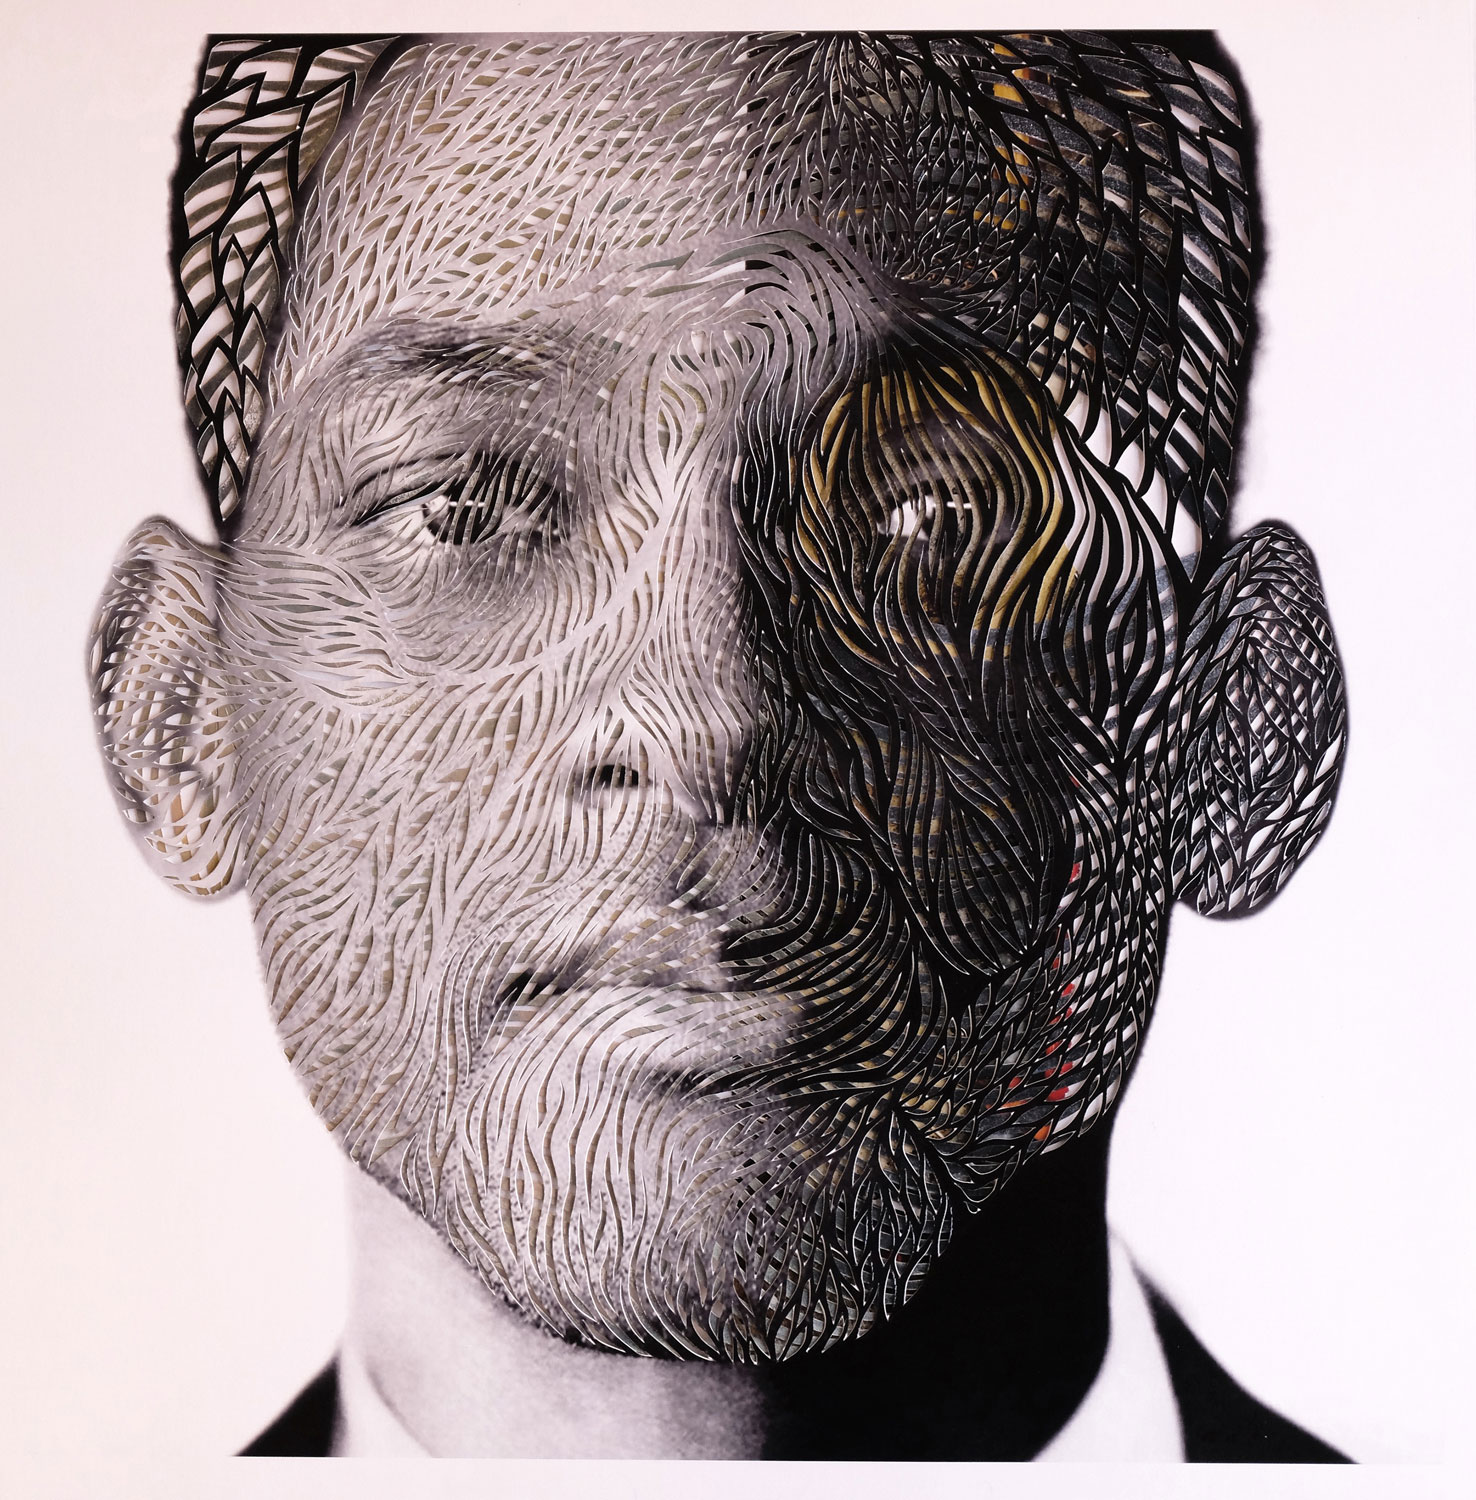 Will Smith - Marco Gallotta